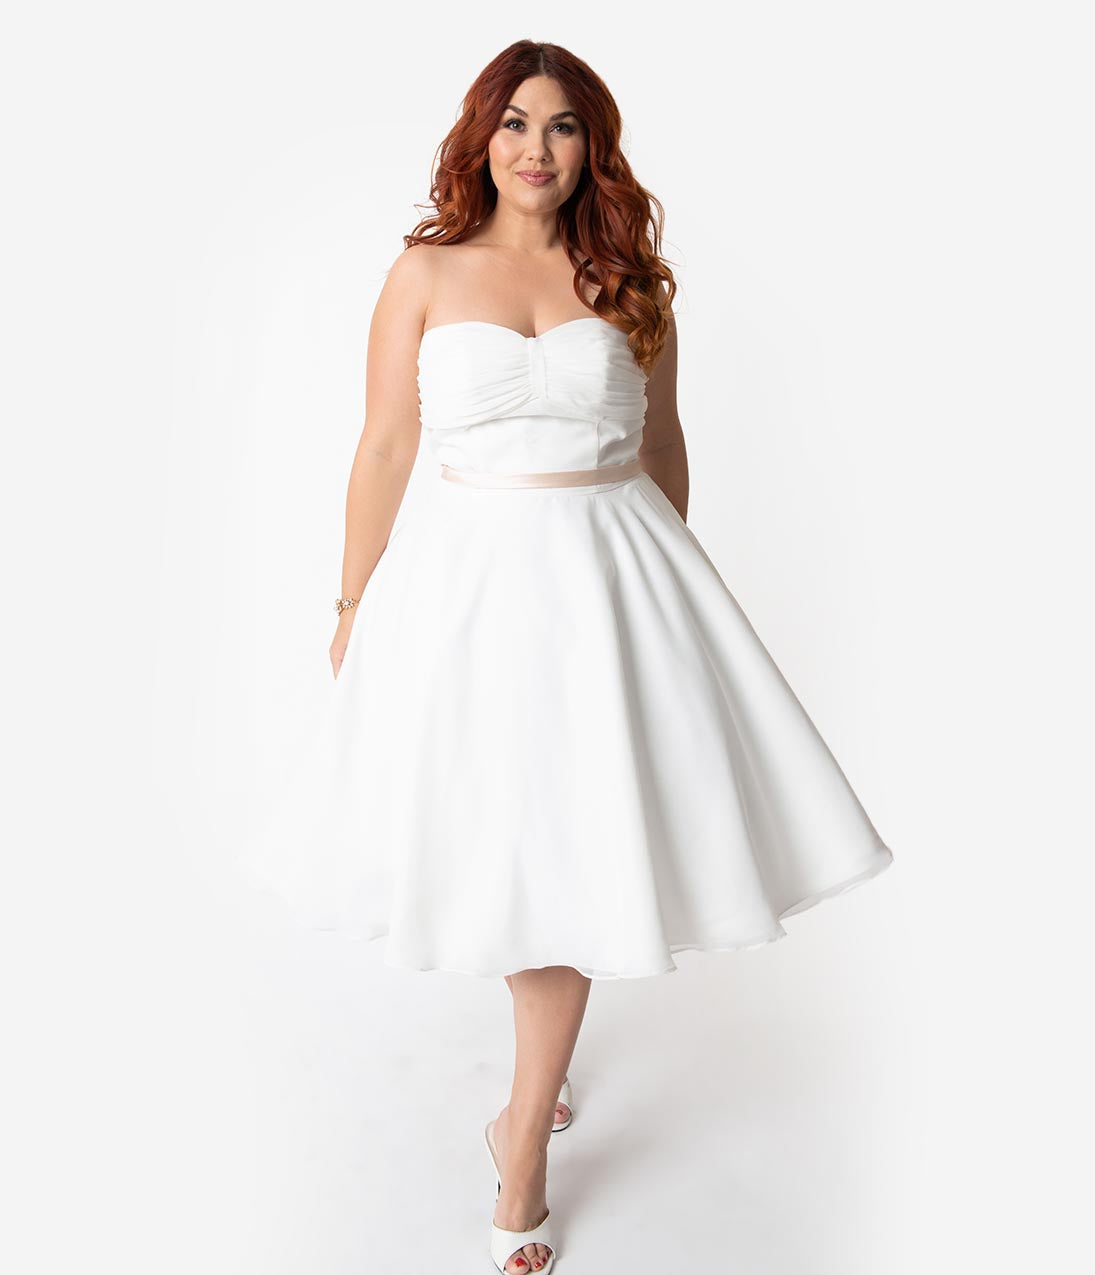 Plus Size Strapless Tea Length Swing-Skirt Gathered Mesh Pleated Banding Pocketed Tiered Empire Natural Waistline Sweetheart Wedding Dress